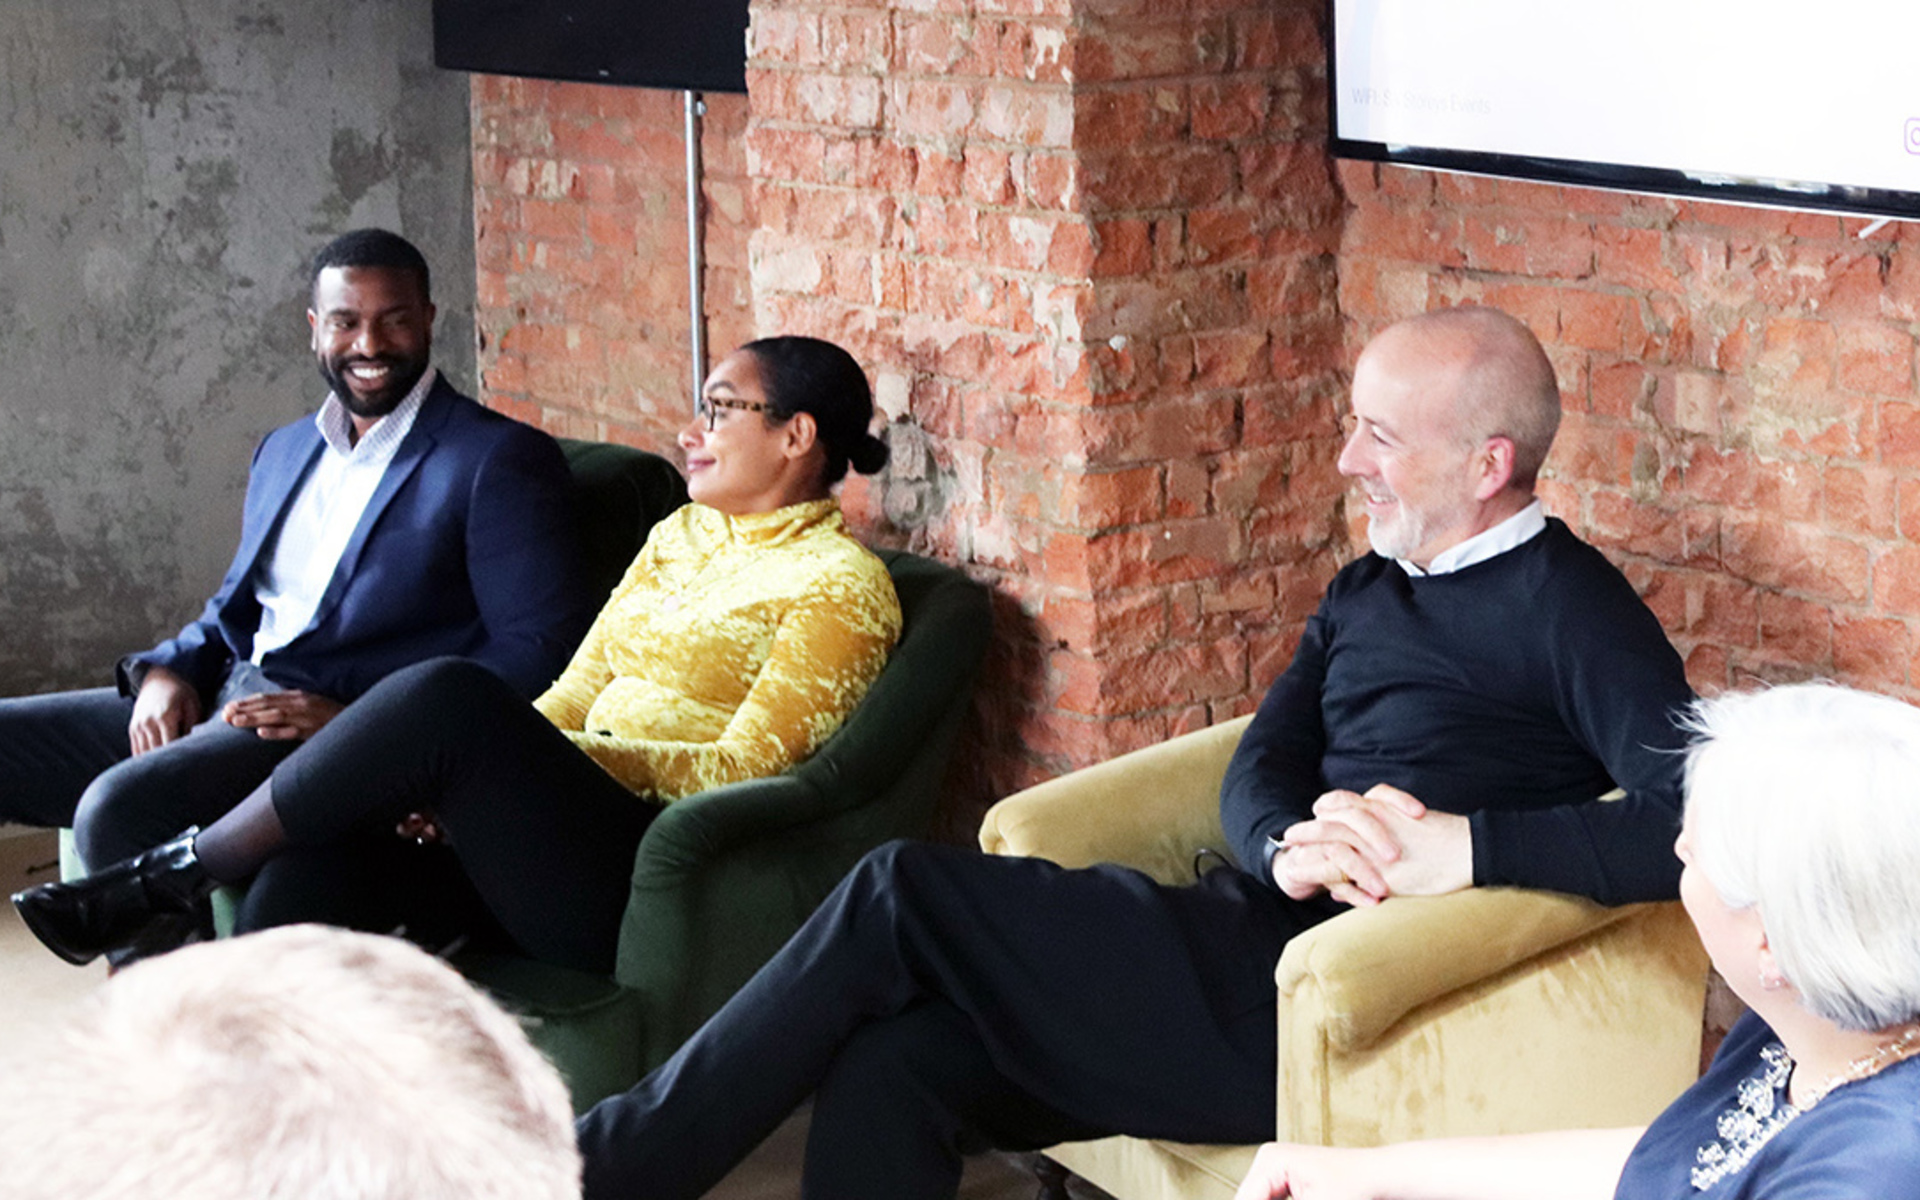 A man in a suit, a women in a yellow top and man in a black jumper on stage at an event in front of a brick wall